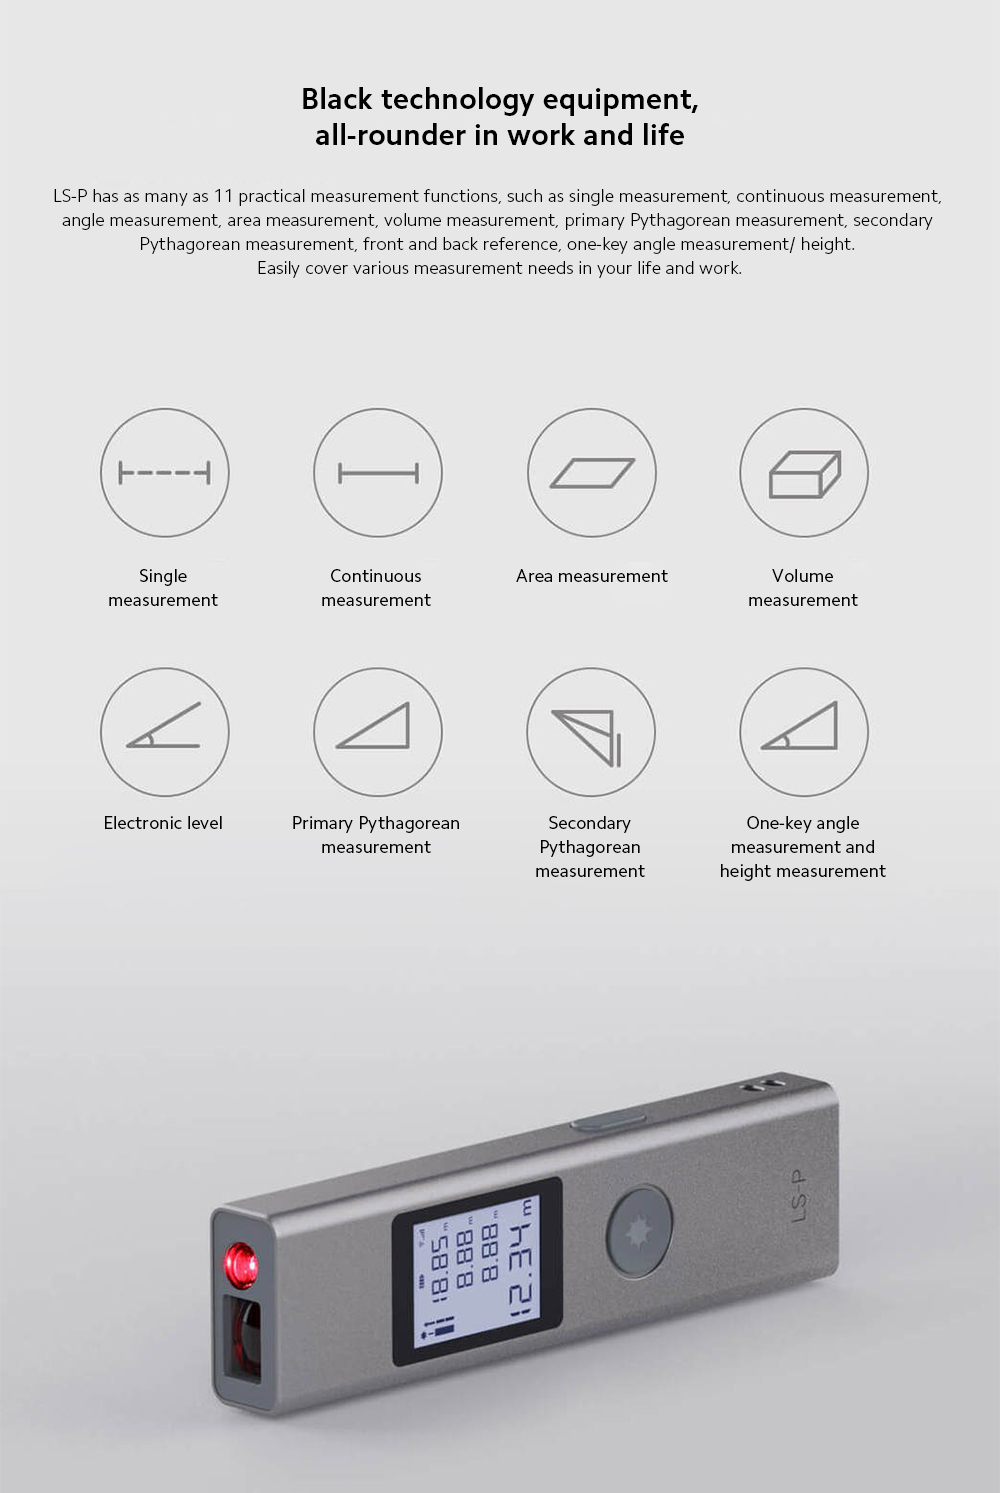 DUKA LS-P Electronic Distance Meter Black technology equipment, all-rounder in work and life